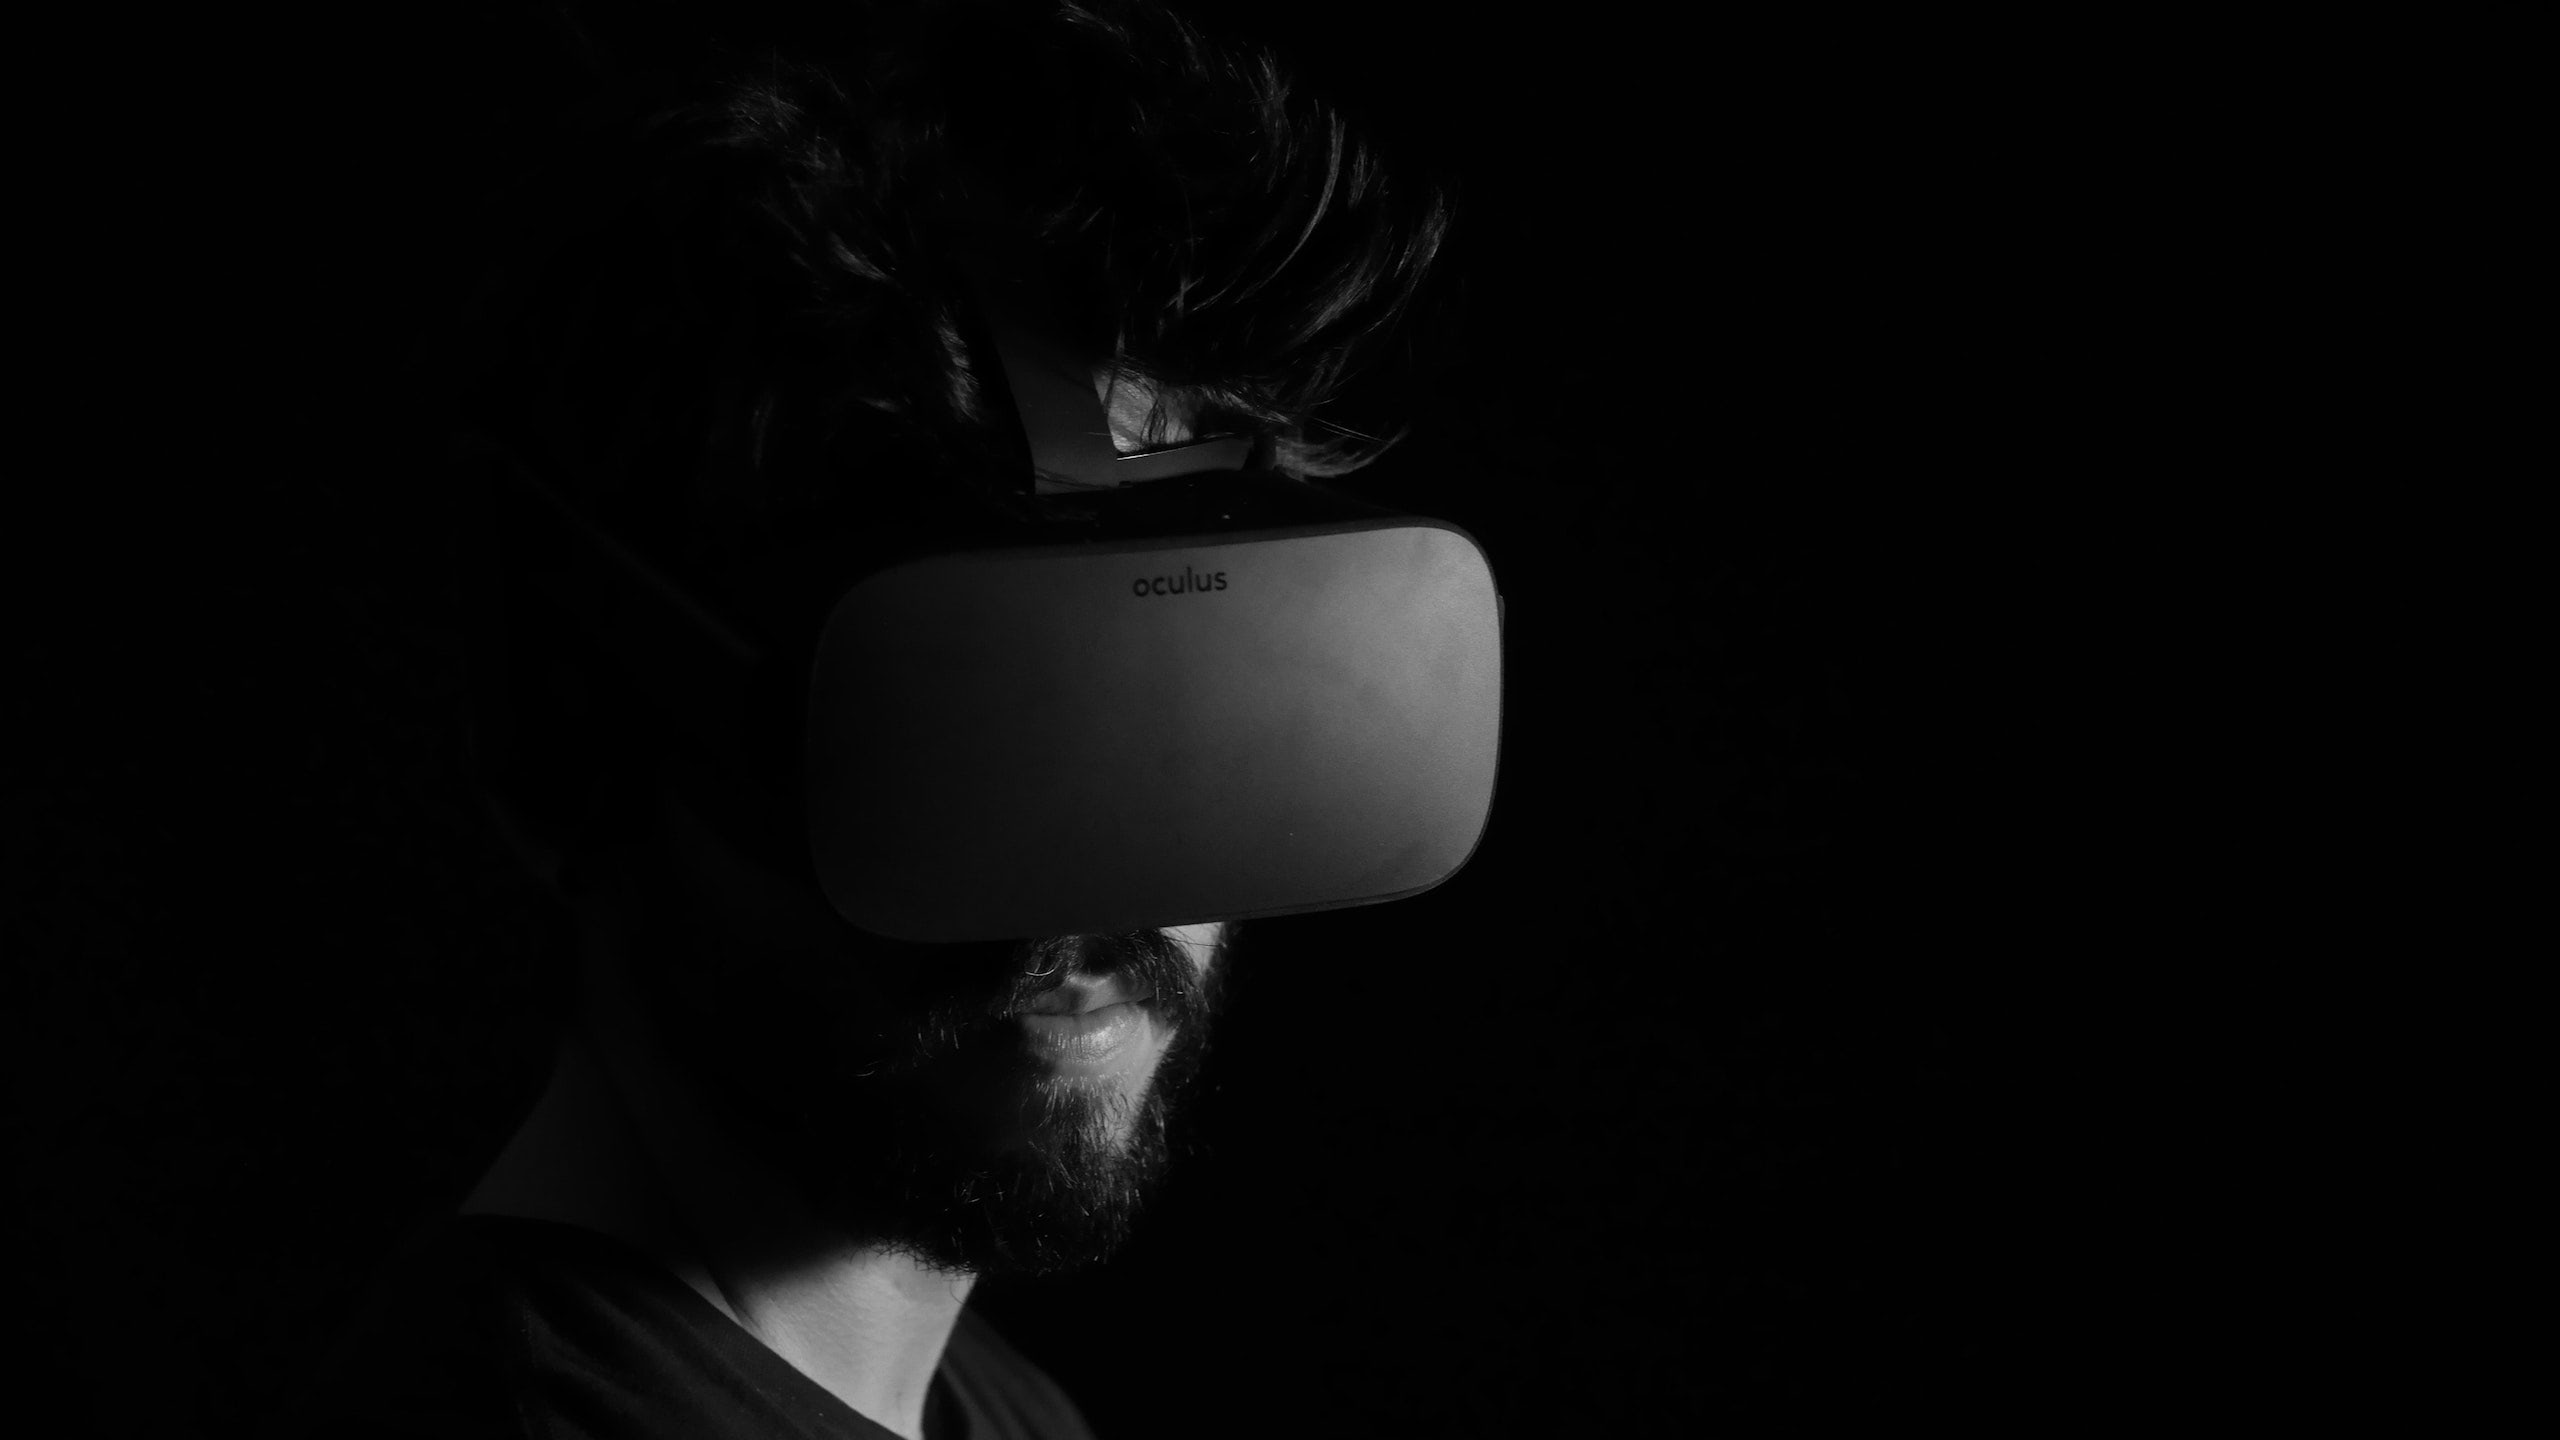 Person wearing a VR headset, their face is obscured by shadows